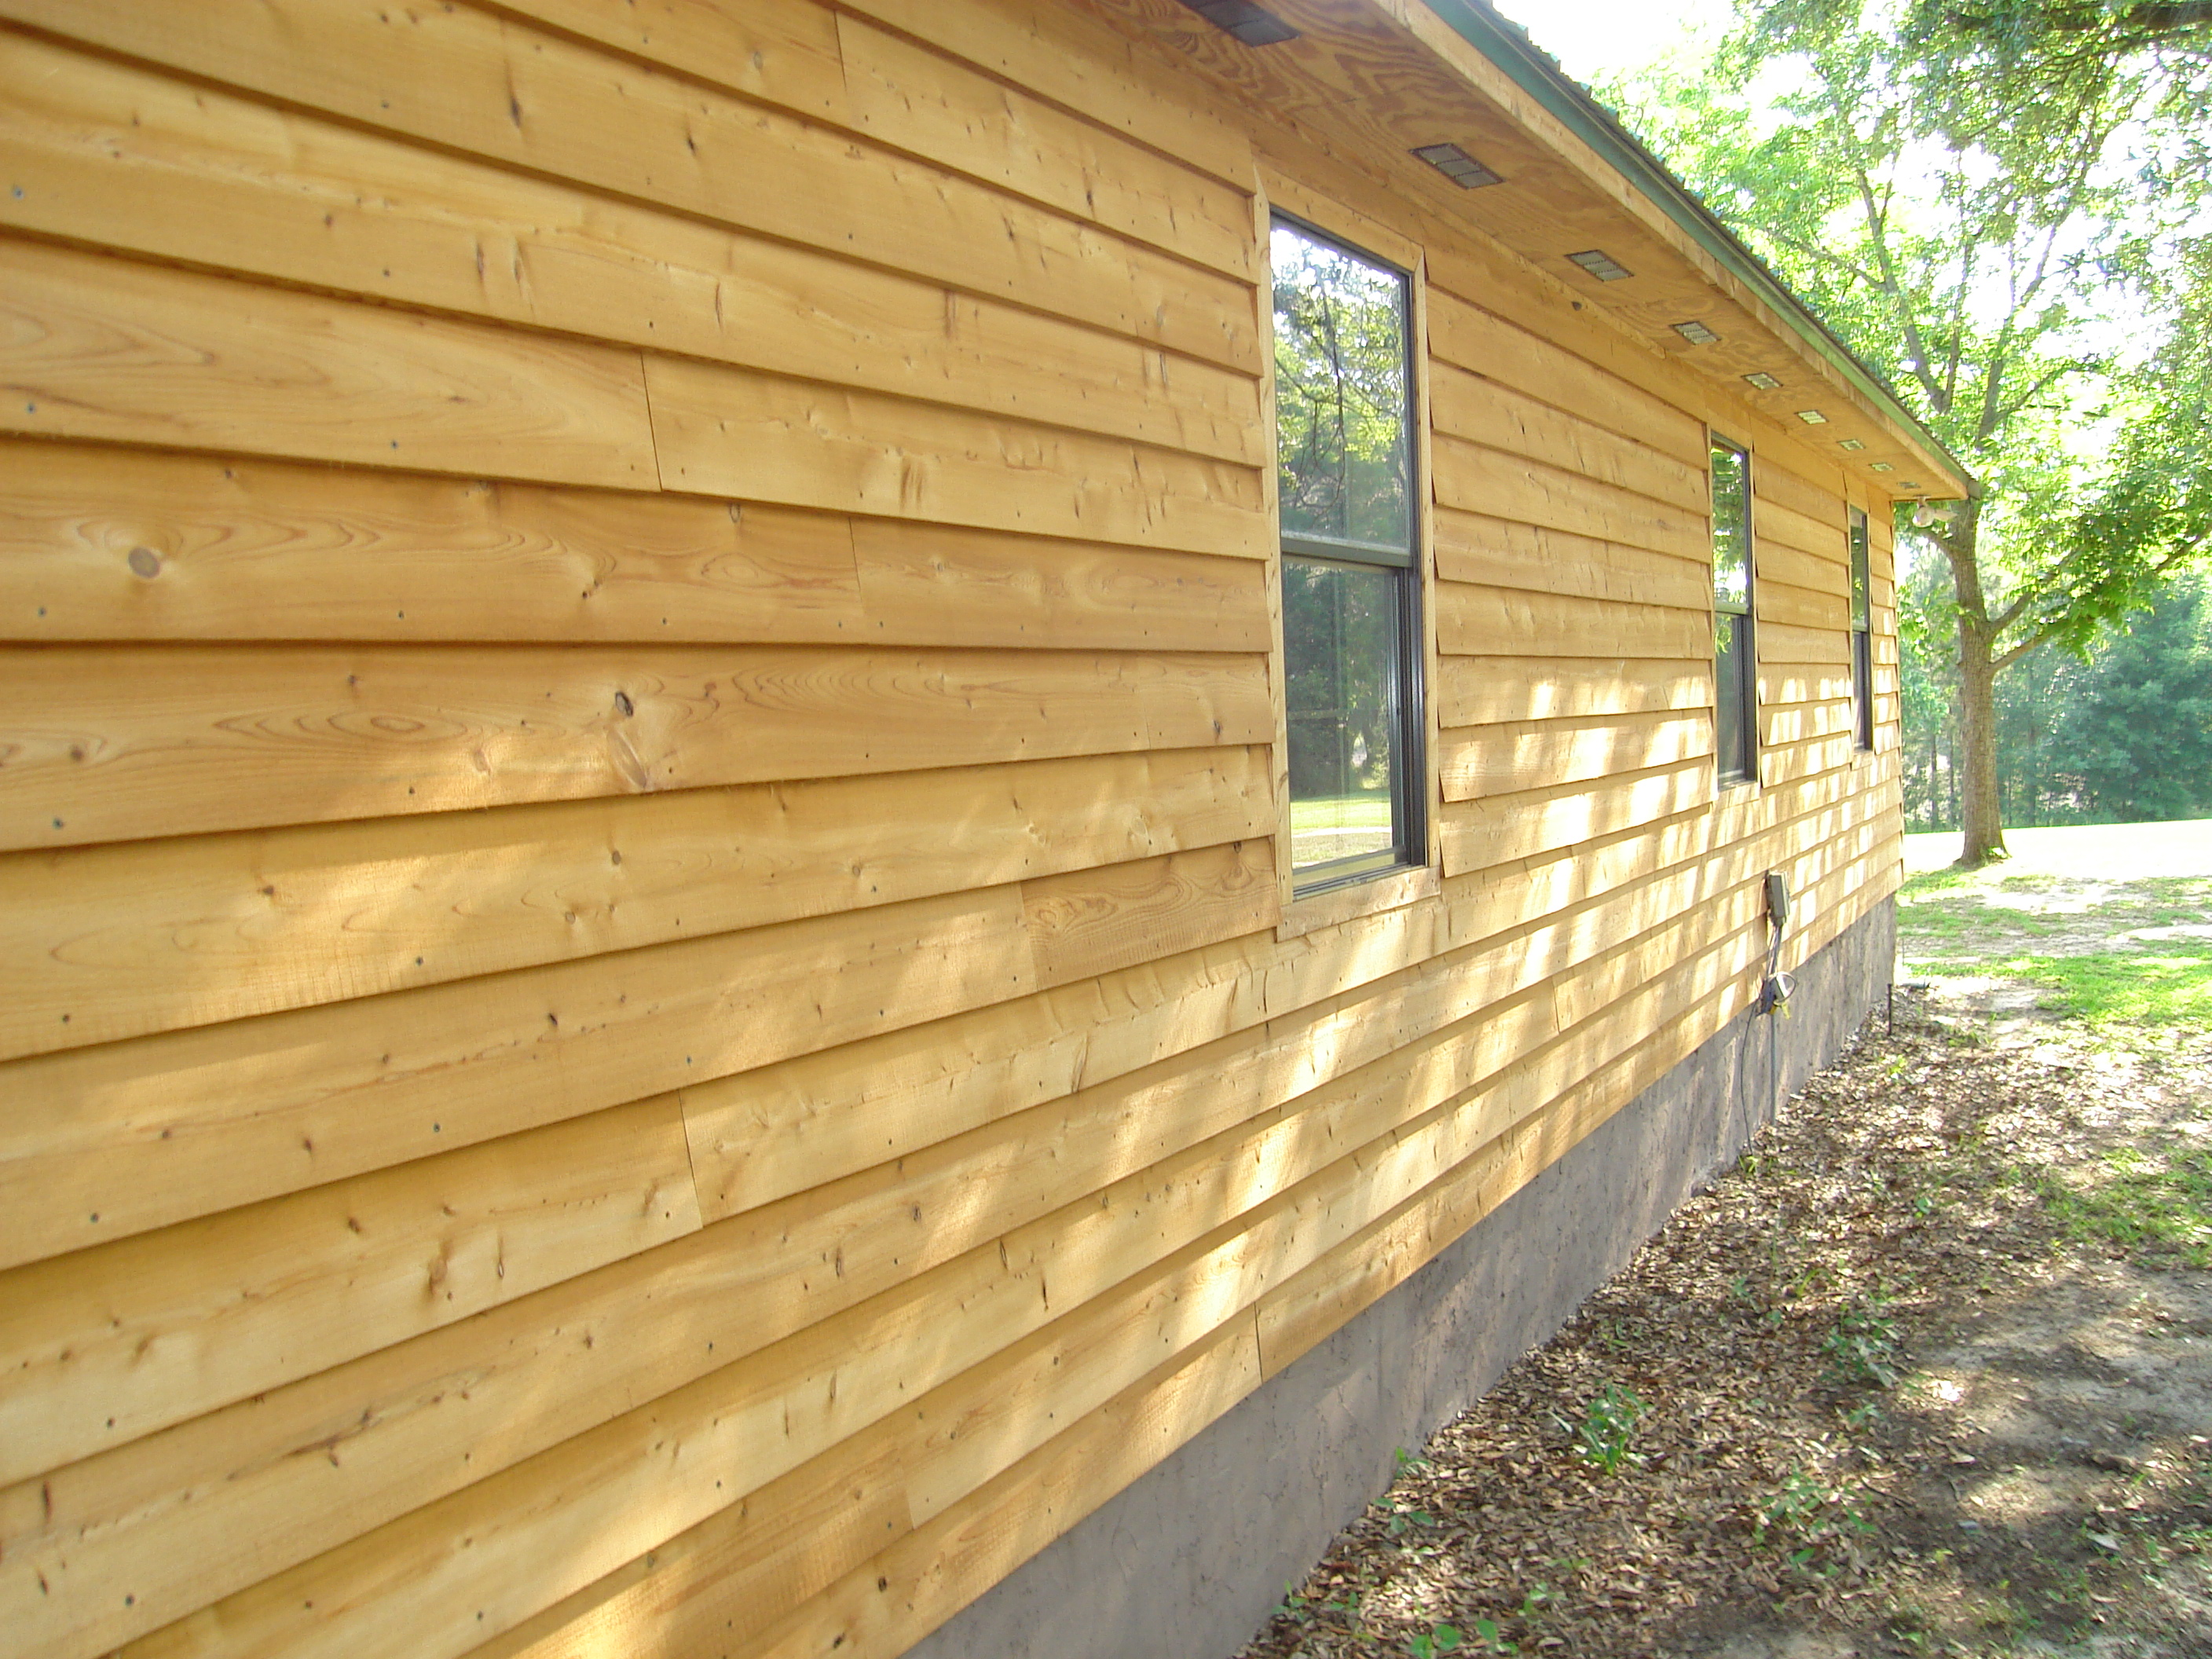 Wood Siding Siding Replacement Company